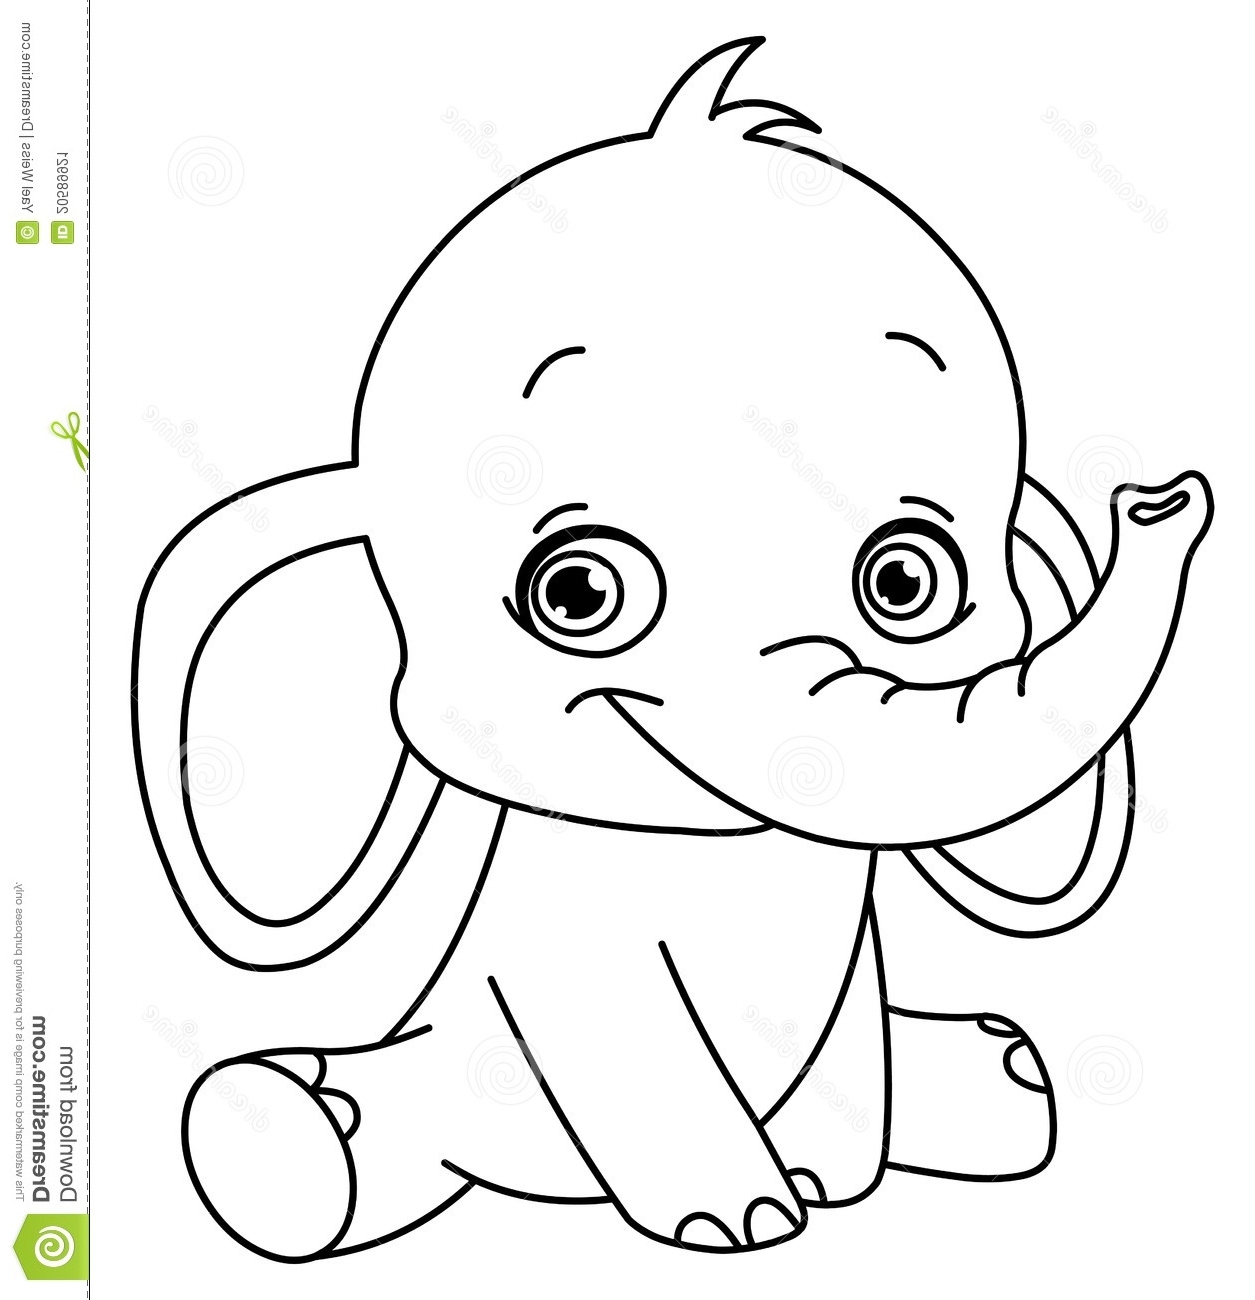 Elephant Coloring Pages At Getcolorings